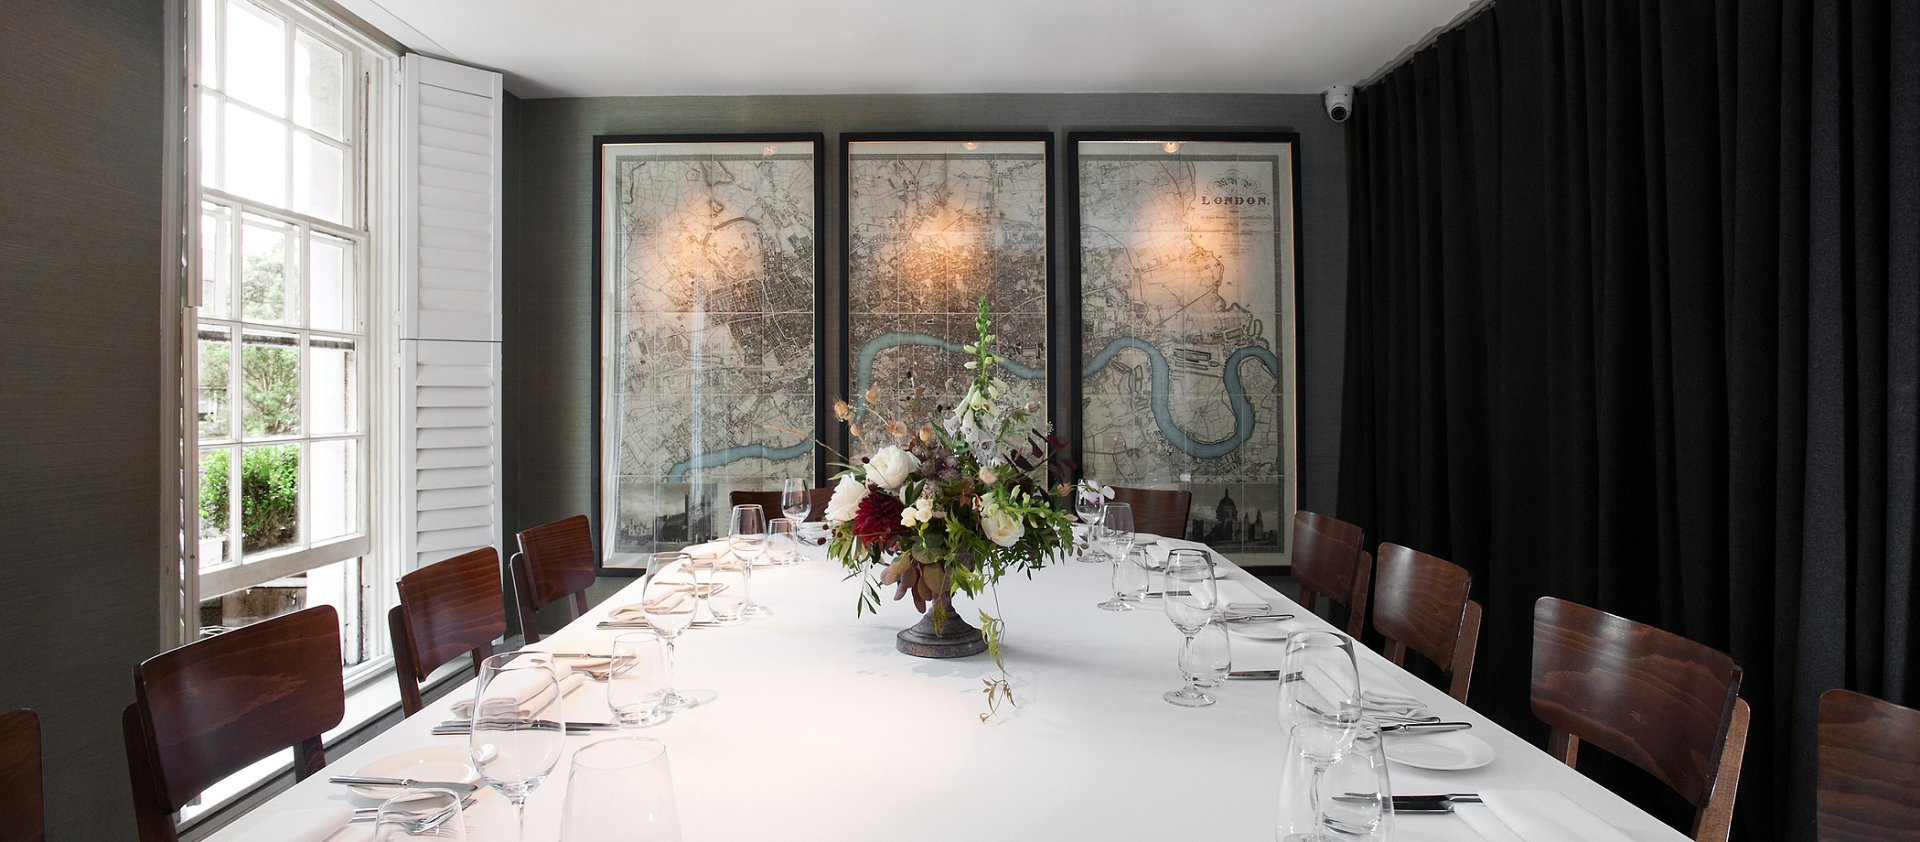 Chelsea restaurant Medlar - an ideal private dining room for small wedding receptions (Chelsea Register Office in Chelsea Old Town Hall is just three bus stops away) with French european food from award winning chef Joe Mercer Nairne and front of house management by co-owner David O'Connor